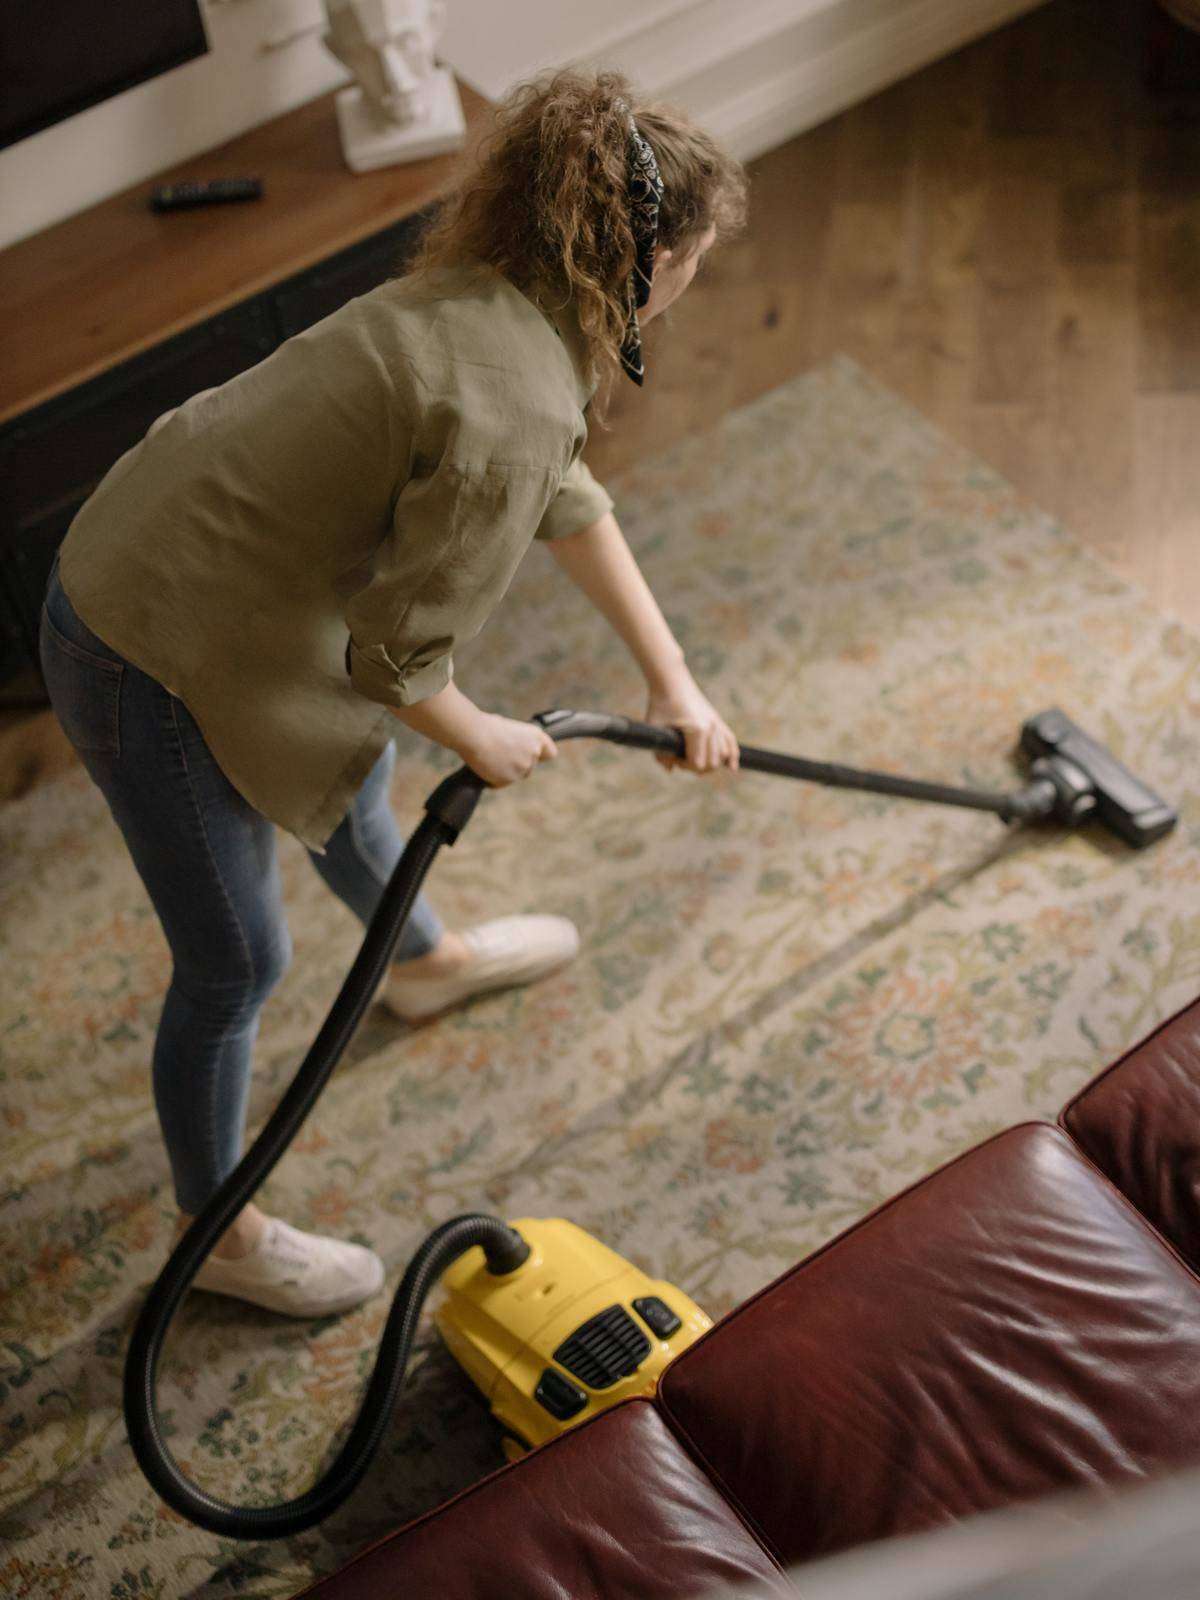 Woman vacuums area rug with yellow vacuum